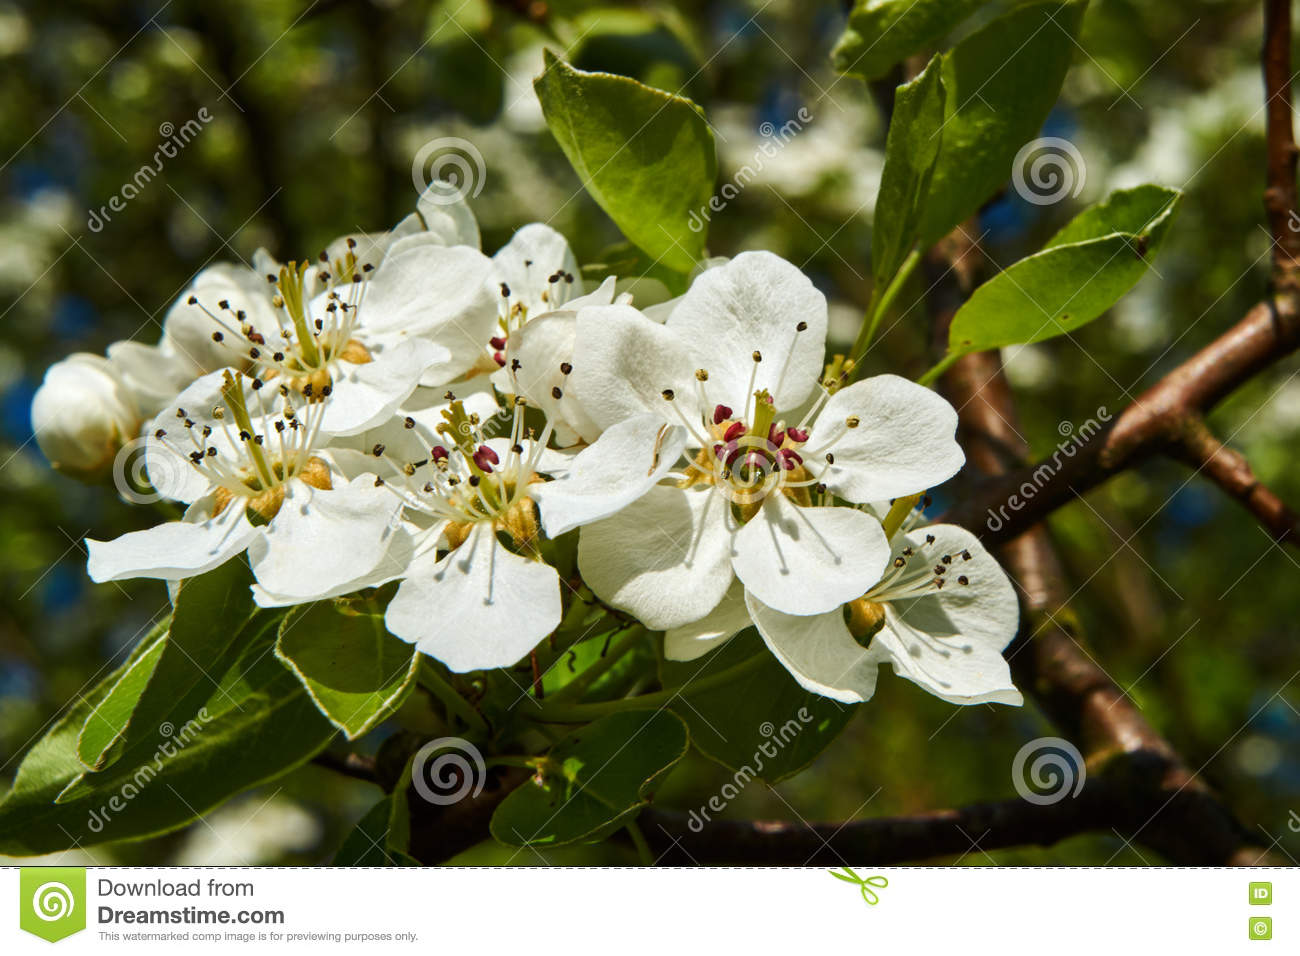 Small white flowers on a tree in the spring stock image image of download small white flowers on a tree in the spring stock image image of europe mightylinksfo